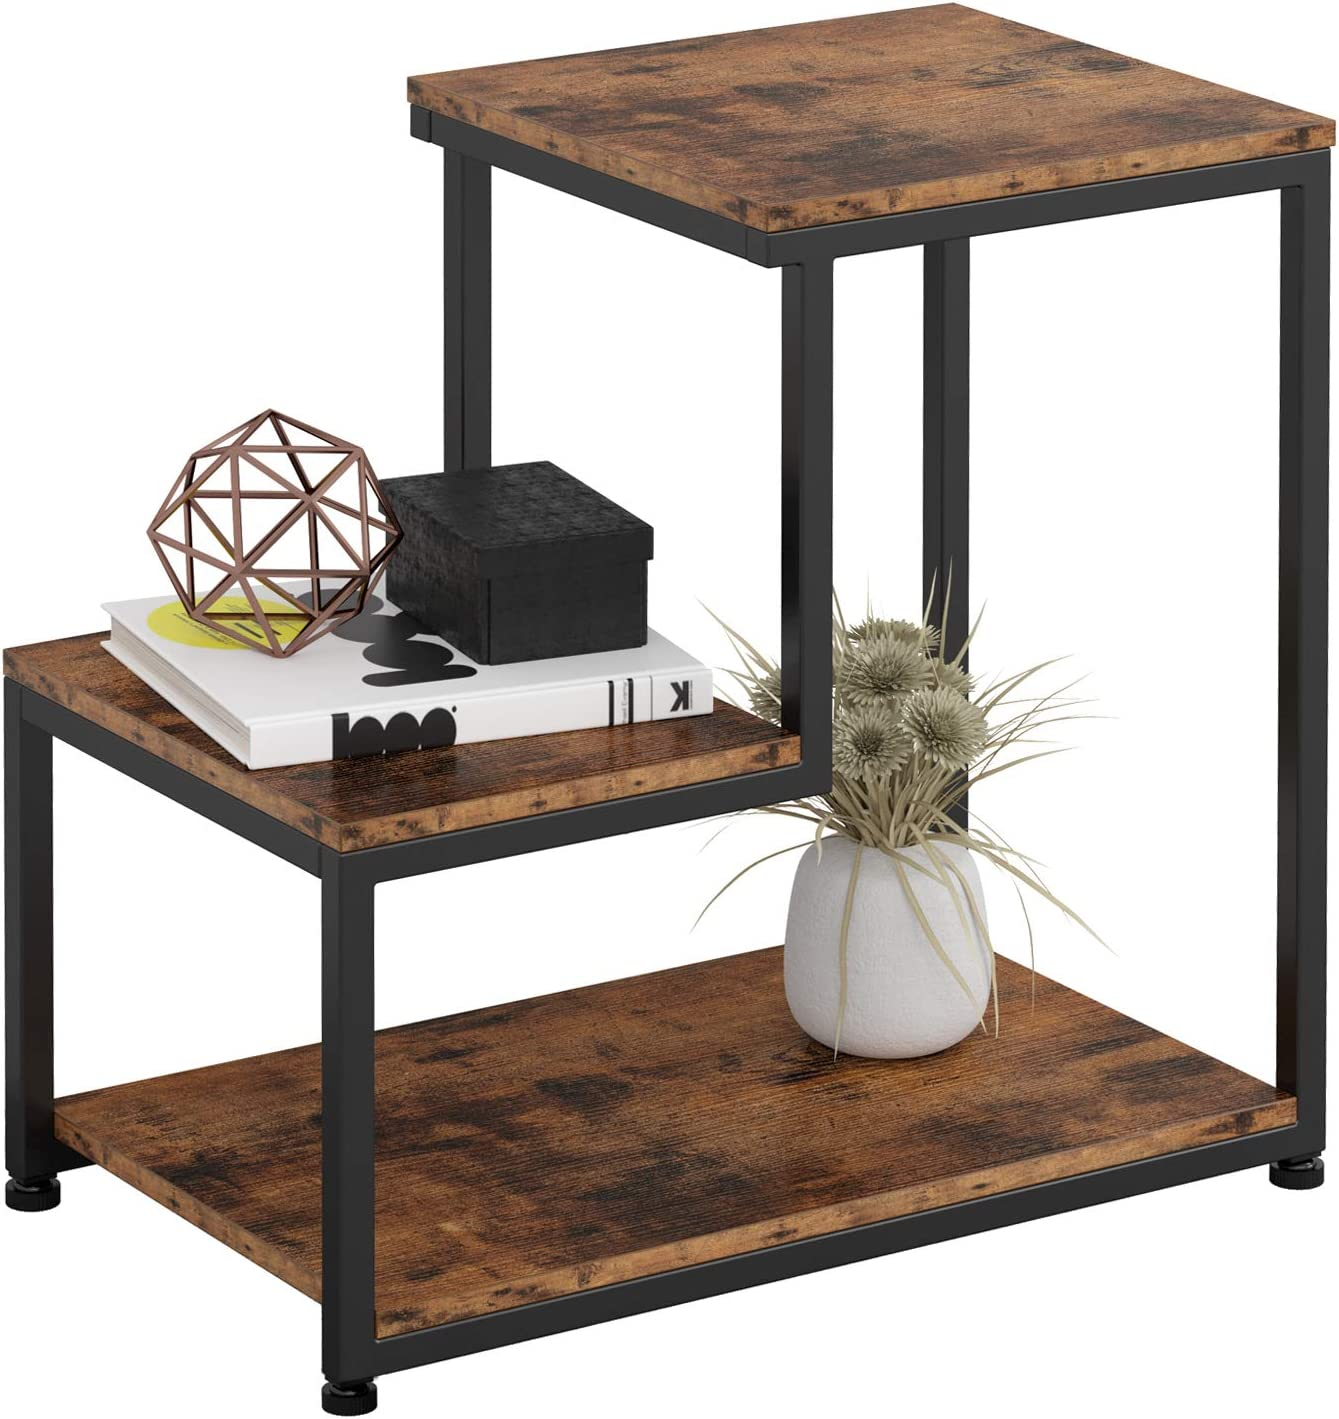 Amazon Com Ironck Industrial Side Tables Living Room 3 Tier End Tables Nightstand With Storage Sturdy Easy Assembly Vintage Brown Kitchen Dining